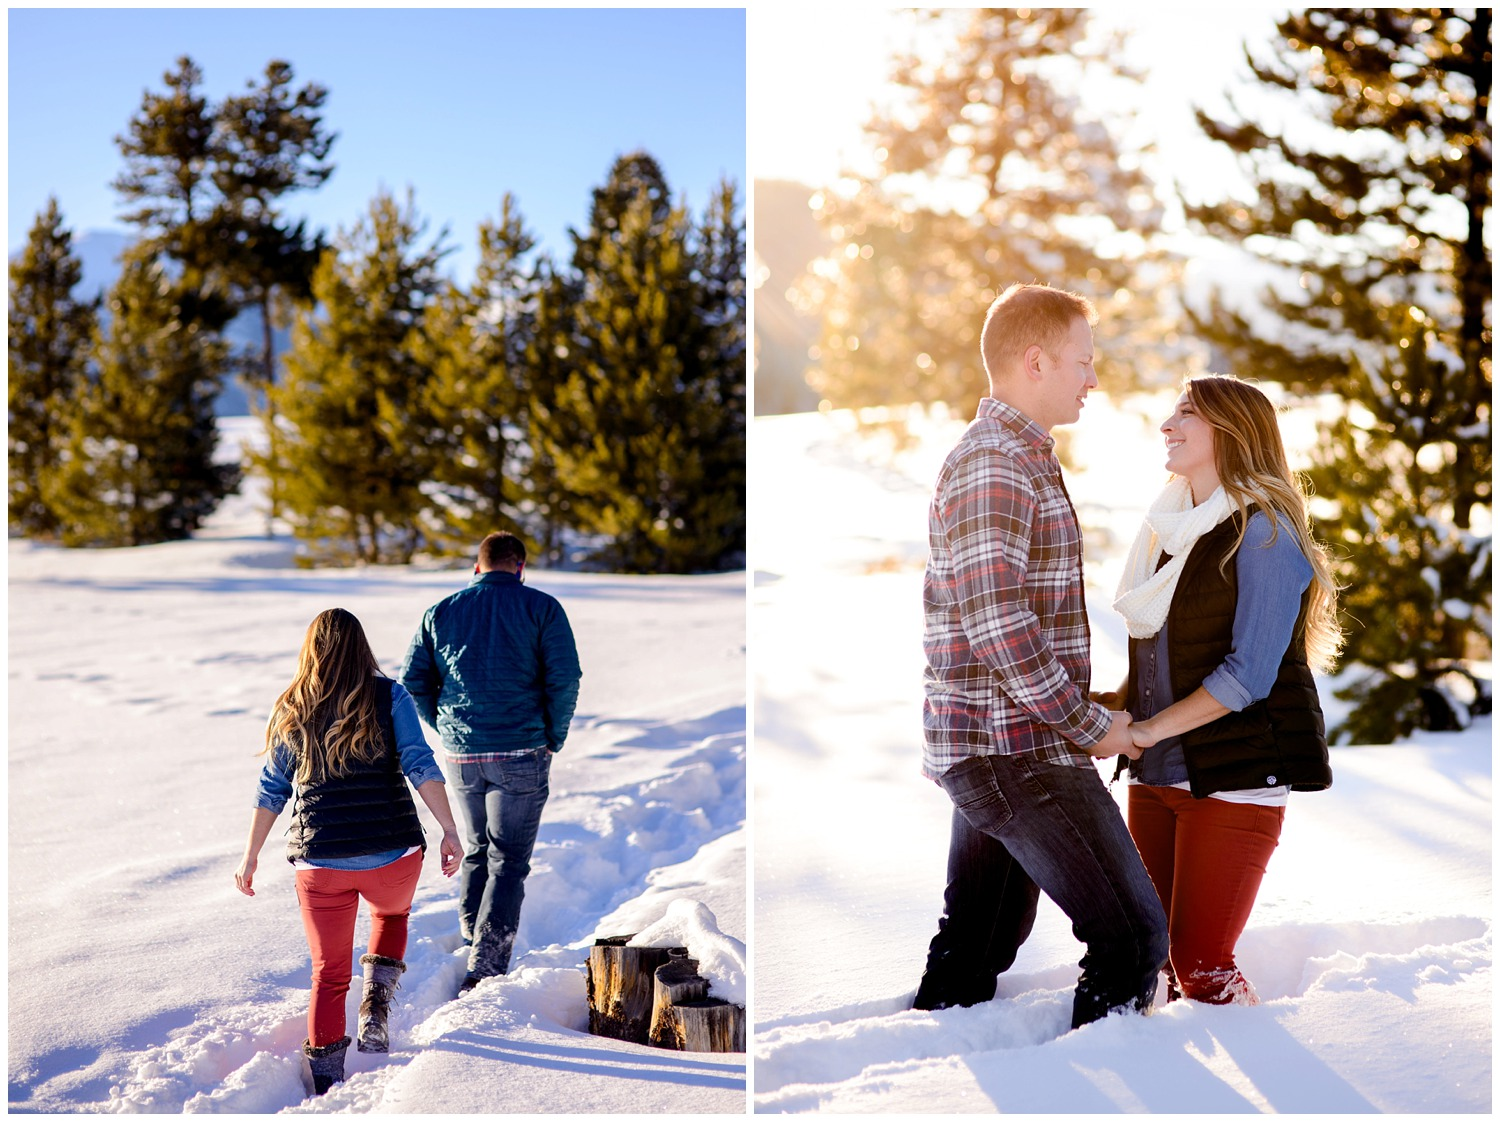 Sapphire-point-winter-engagement-photography_0005.jpg